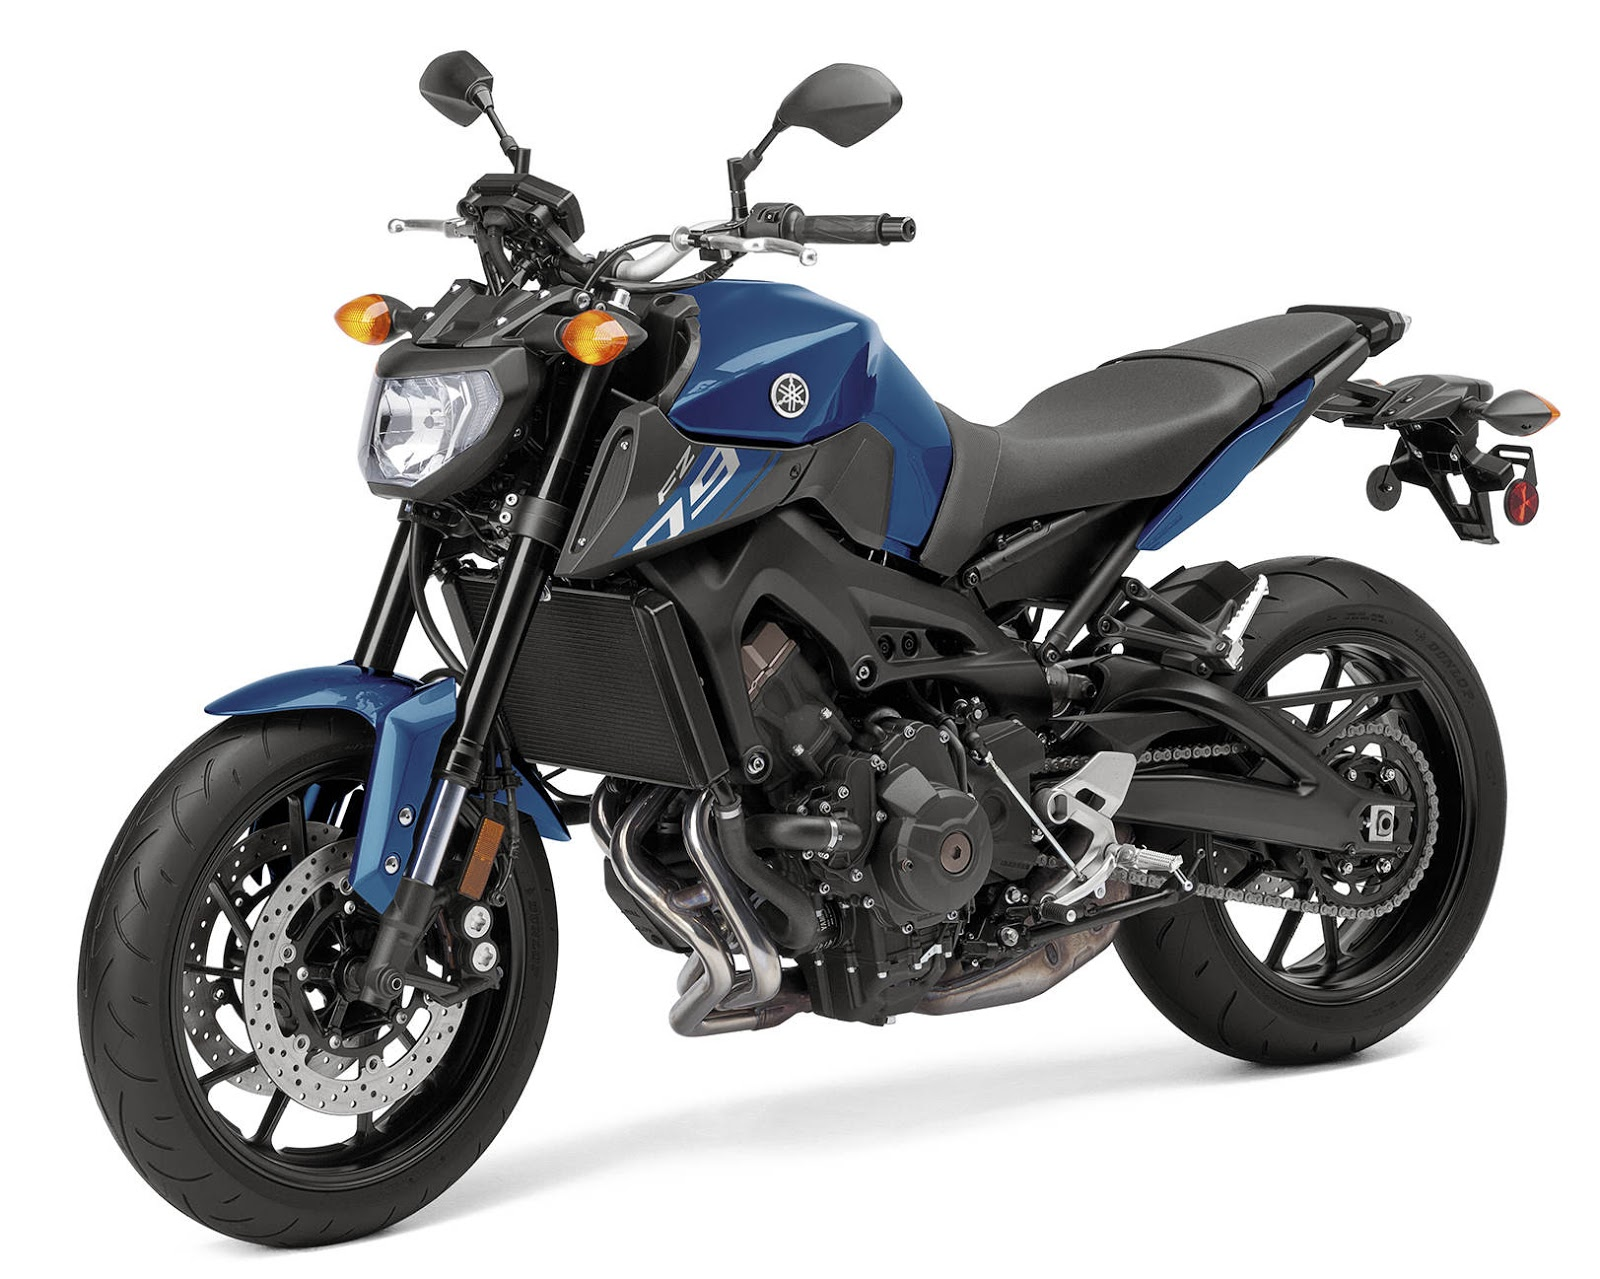 2016 yamaha fz-03 first look hd image - all latest new & old car hd